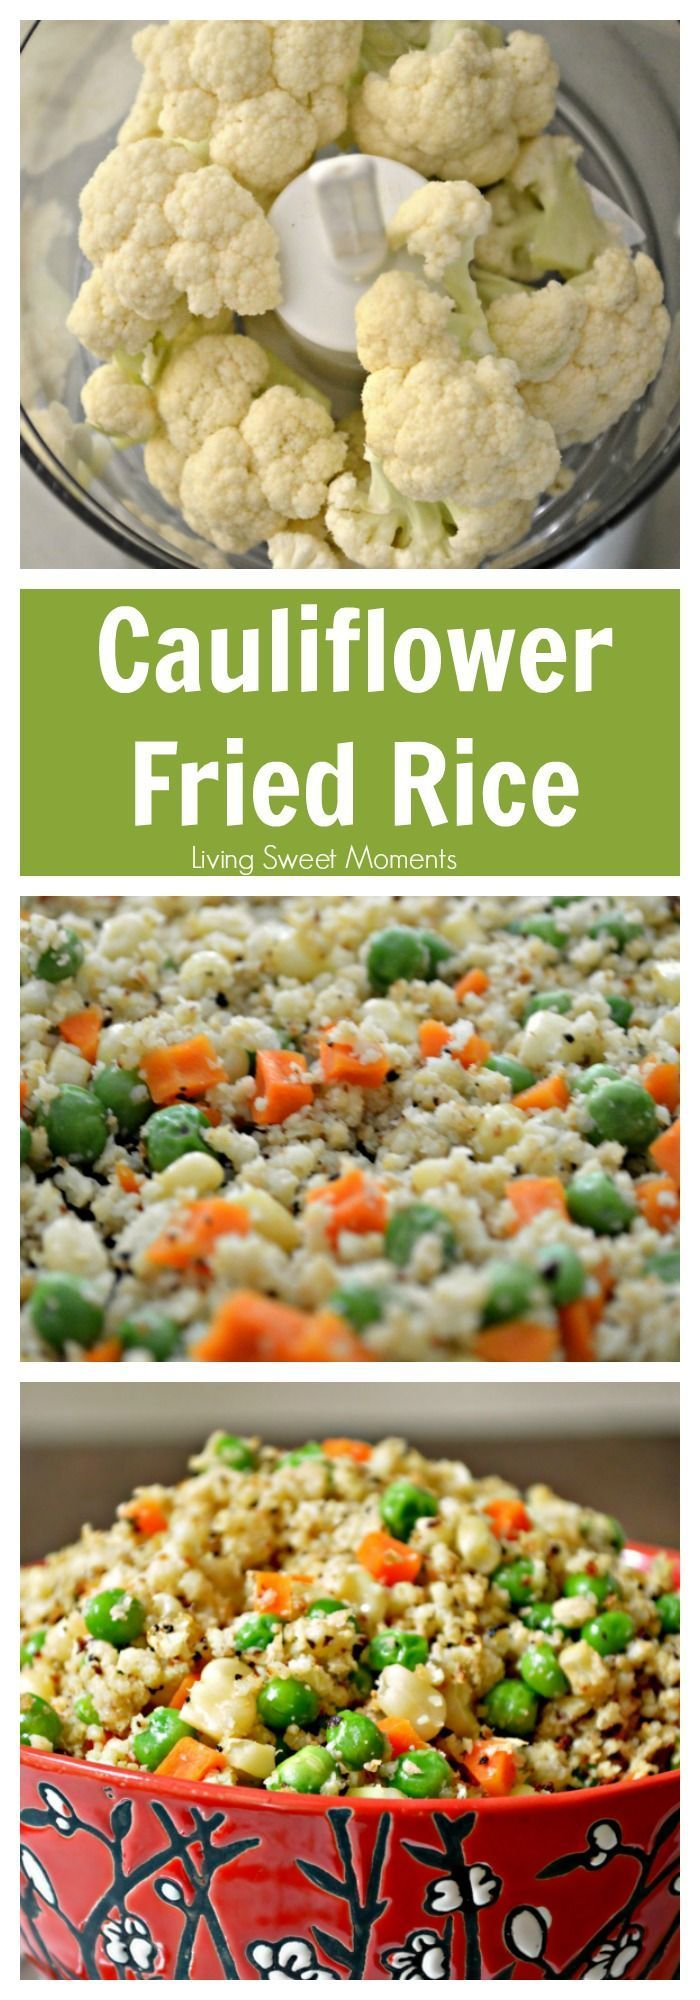 Cauliflower Fried Rice Recipe - Healthy, low-carb, and seriously tasty! Tastes so much like the Chinese takeout but without the guilt. Perfect healthy side dish. More on livingsweetmoment...